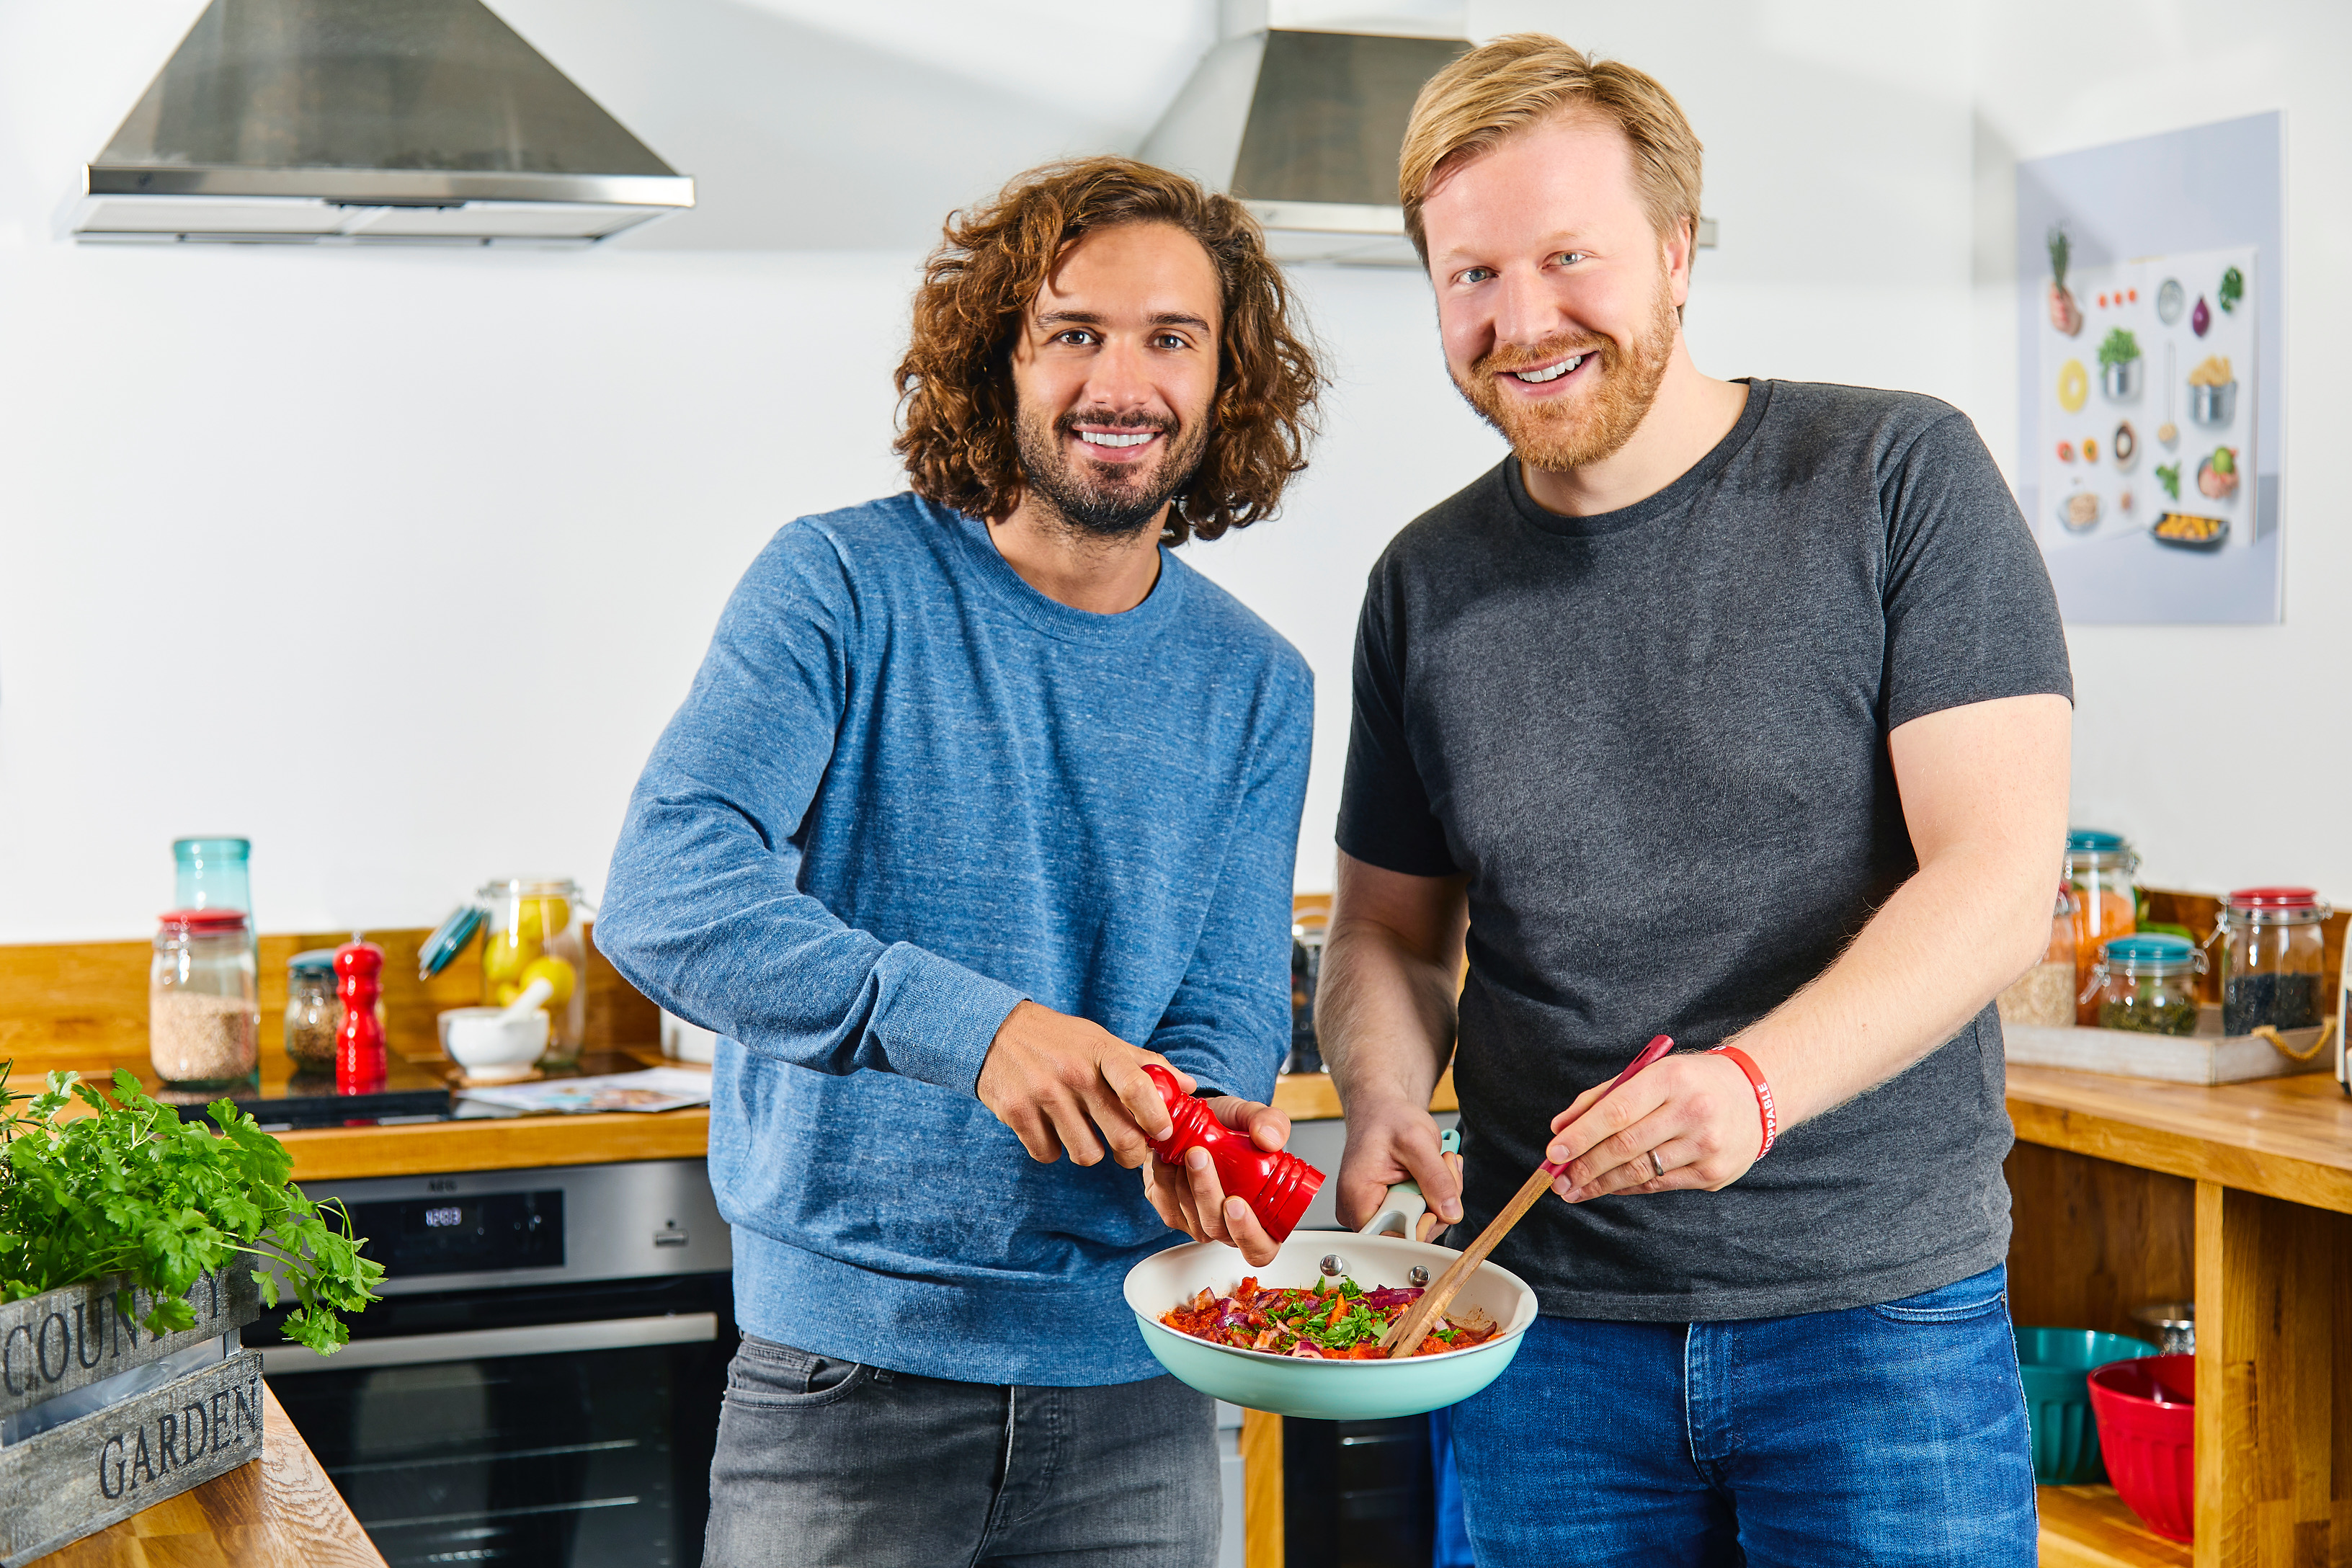 Joe Wicks, The Body Coach, contributes to £18m investment guzzled by Gousto